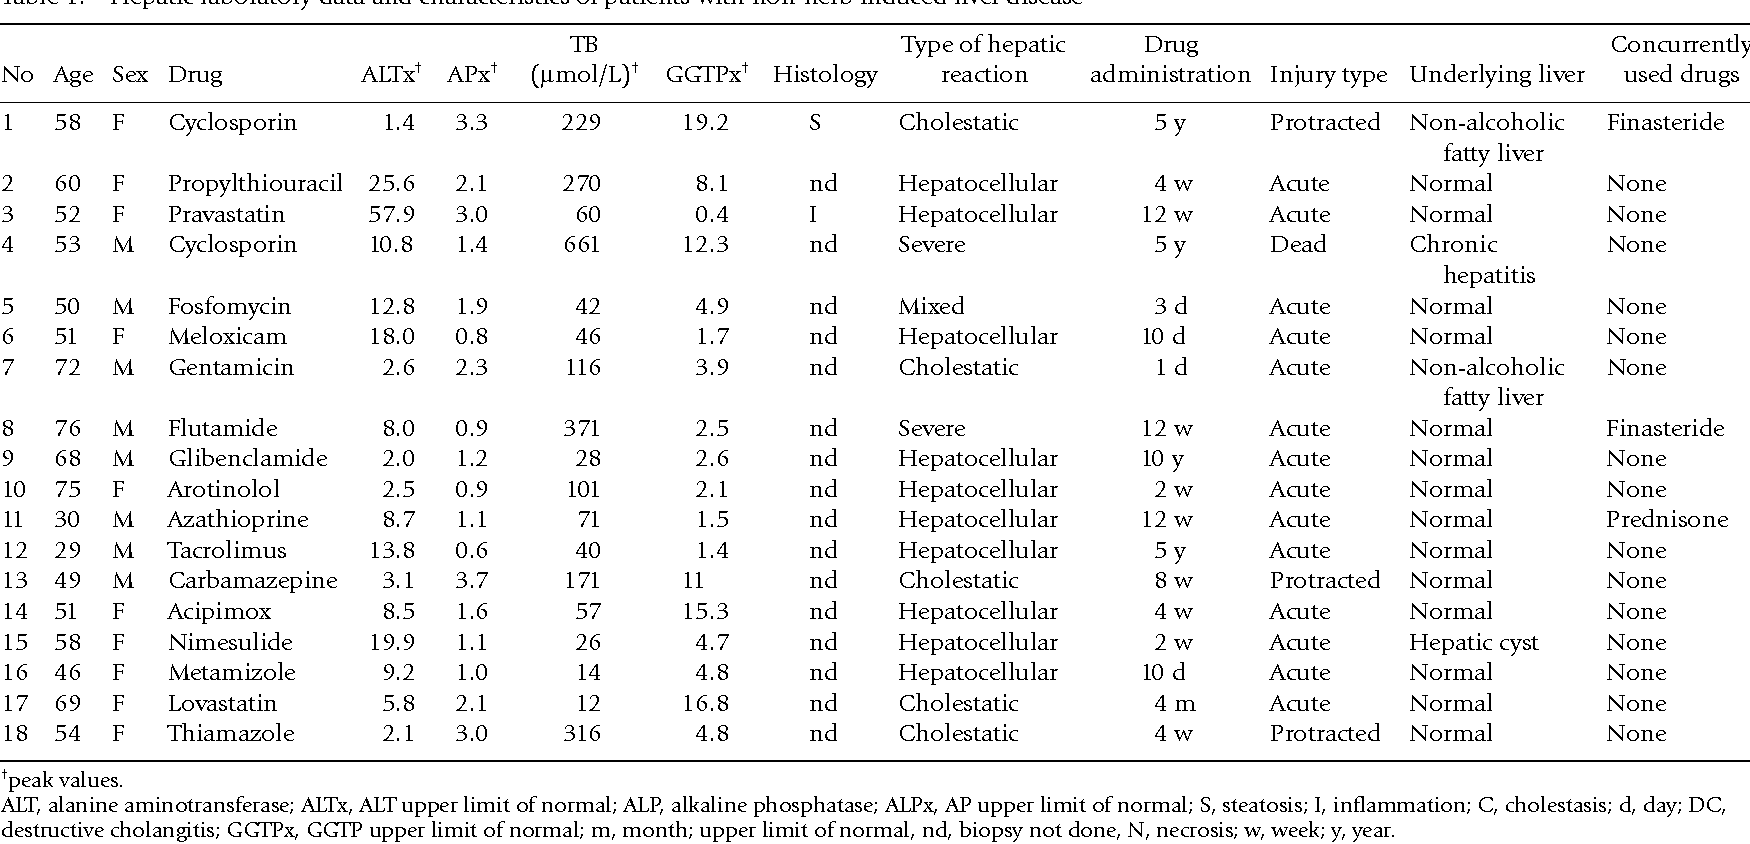 Table 1. Hepatic laboratory data and characteristics of patients with non-herb induced liver disease